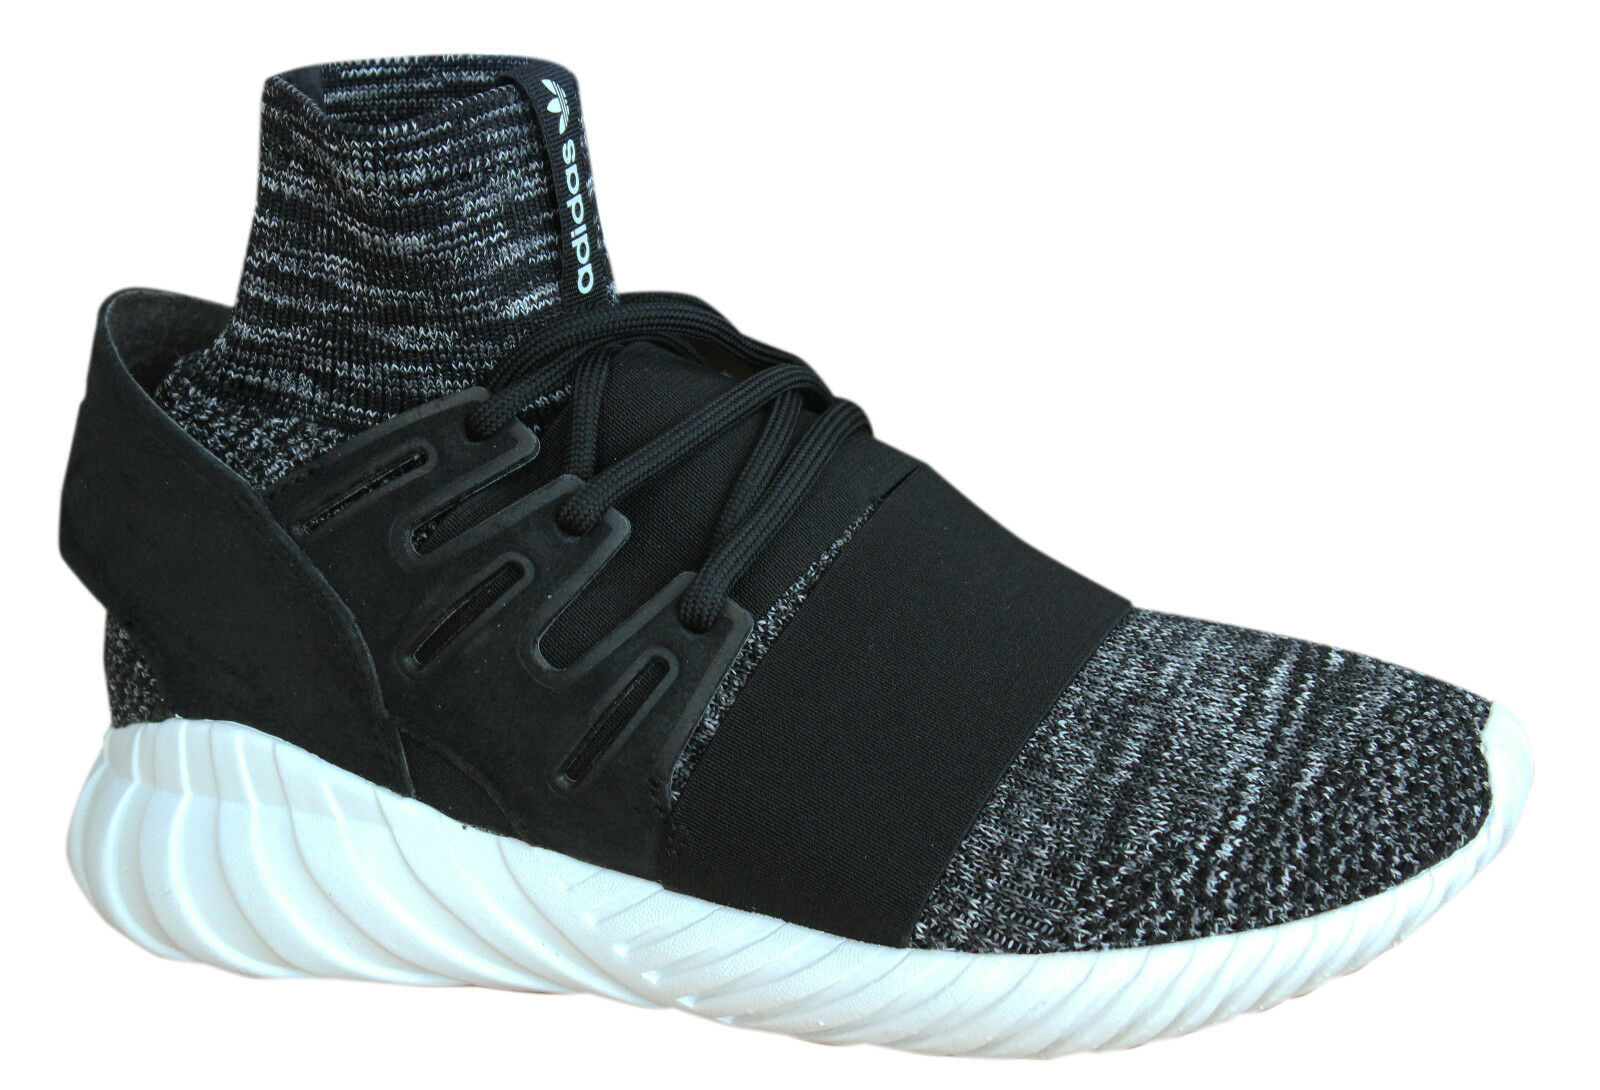 Adidas Tubular Doom PK Lace Up Black Sock Fit Mens Trainers BB2392 Opp M9